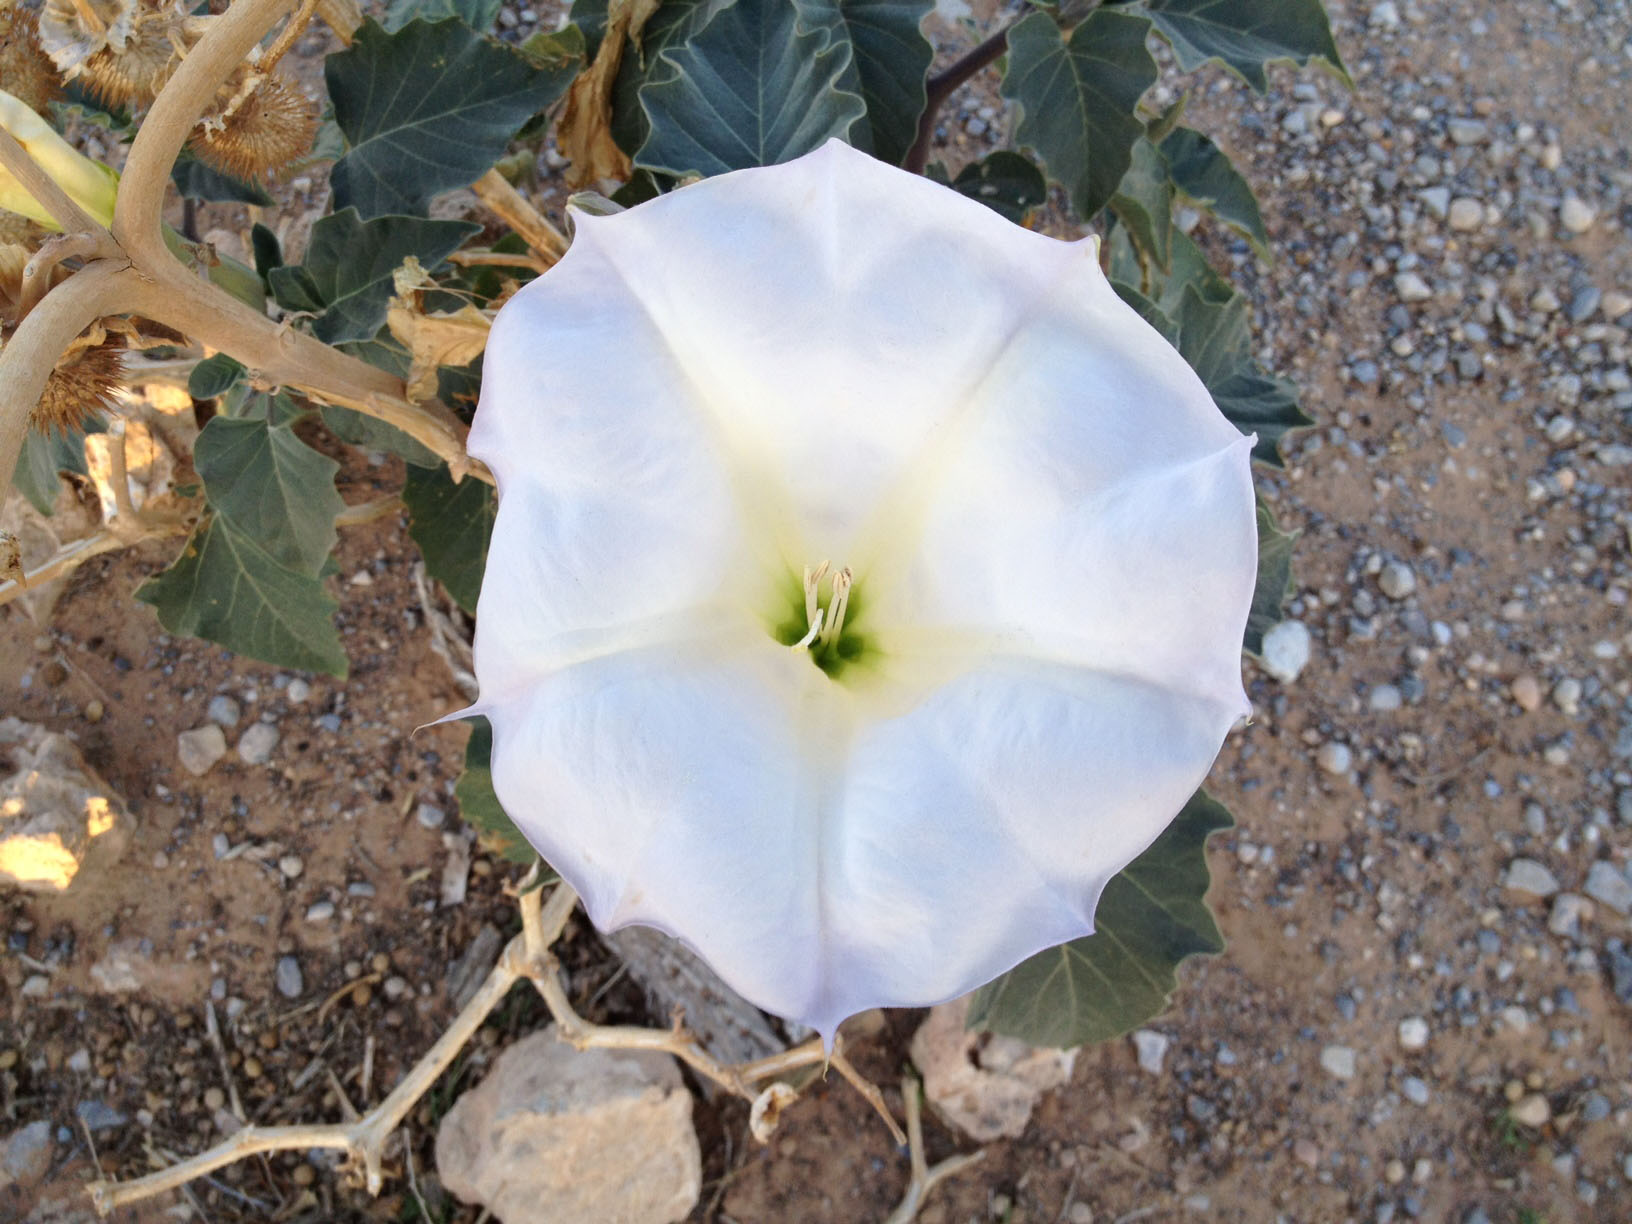 Datura wrightii at Cactus Joe's